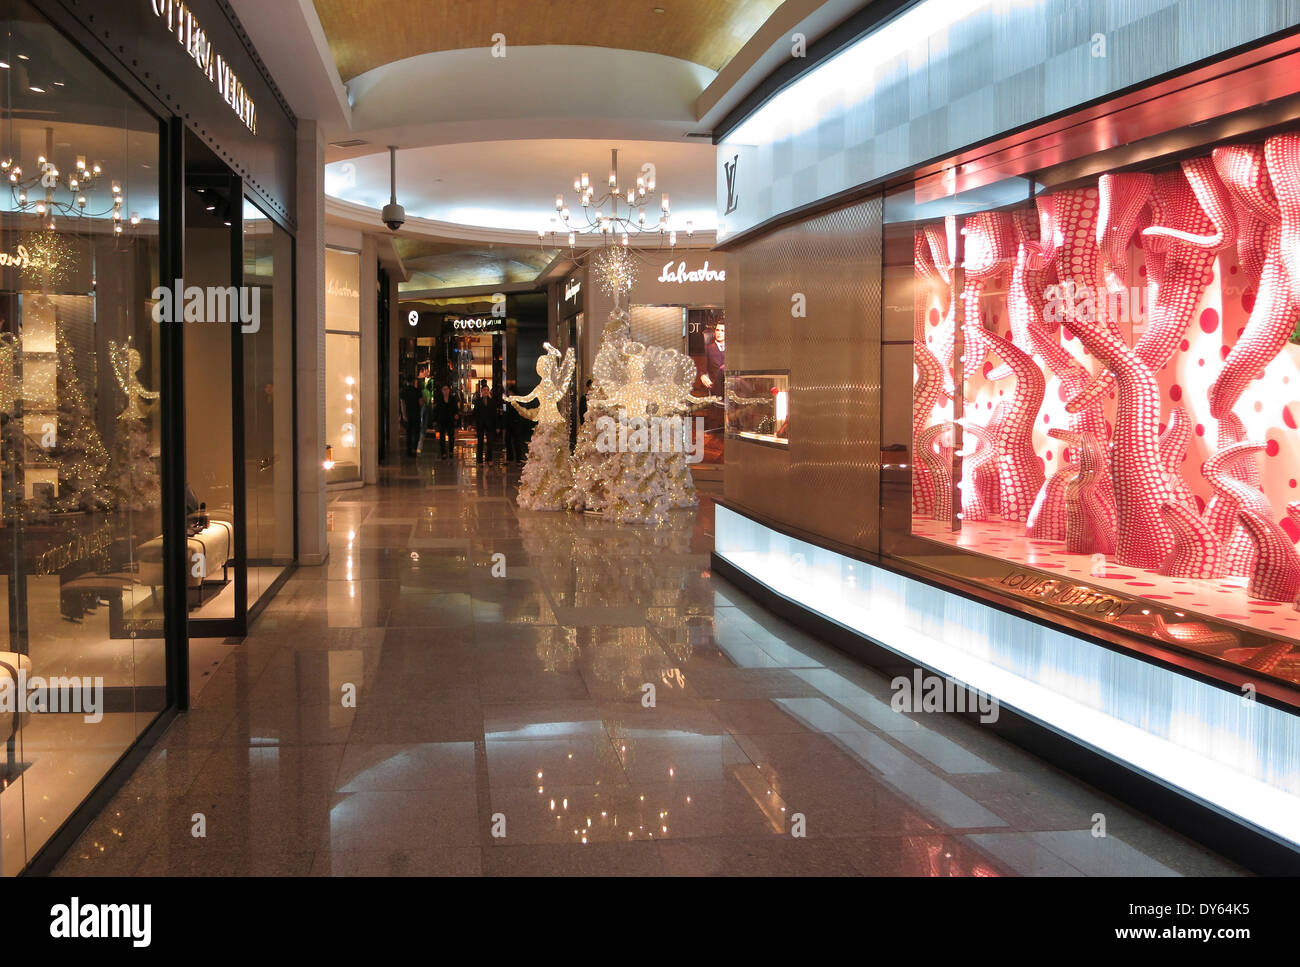 Greenbelt 5 shopping Mall in Makati City, Manila, Luzon Island, Philippines - Stock Image